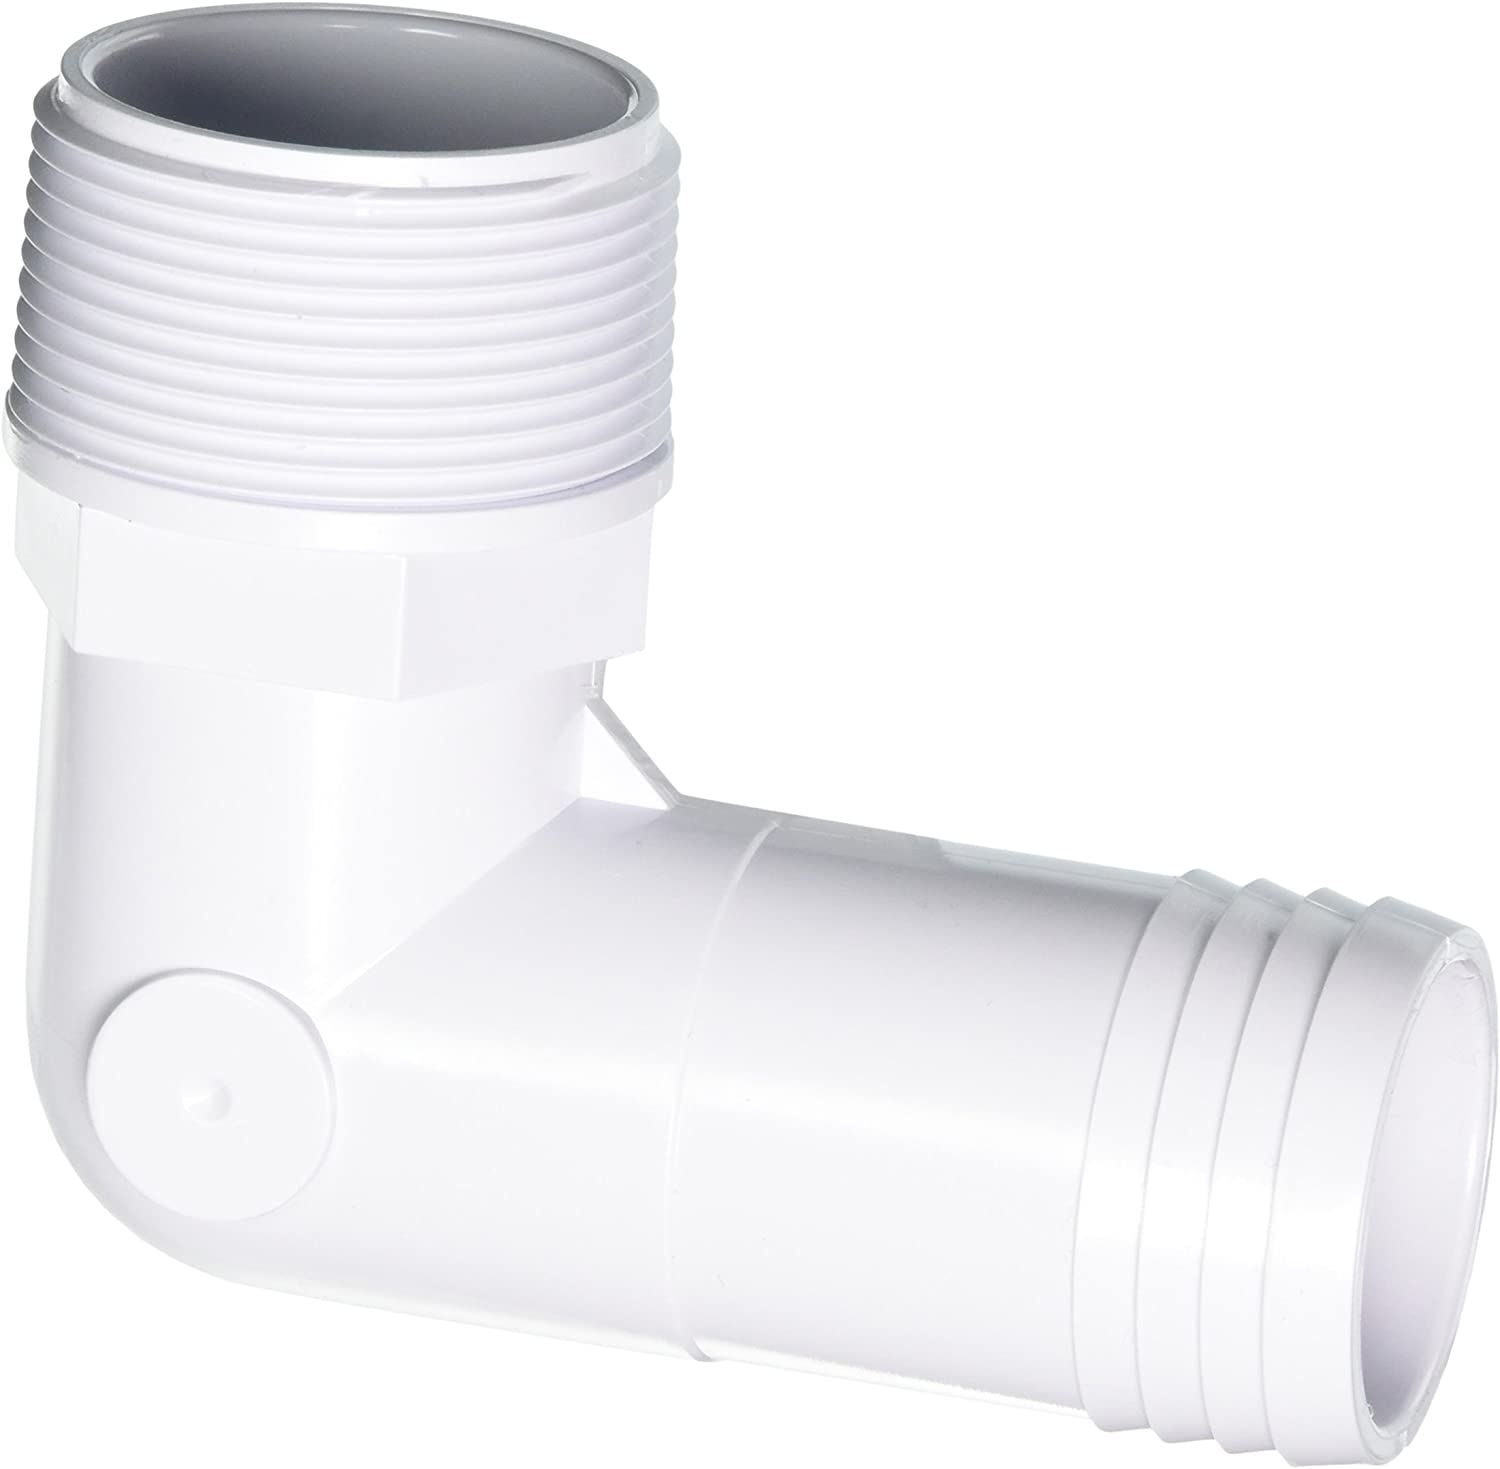 Hayward SPX1105Z4 - 1-1/2-Inch MPT by Barb Elbow Hose Adapter